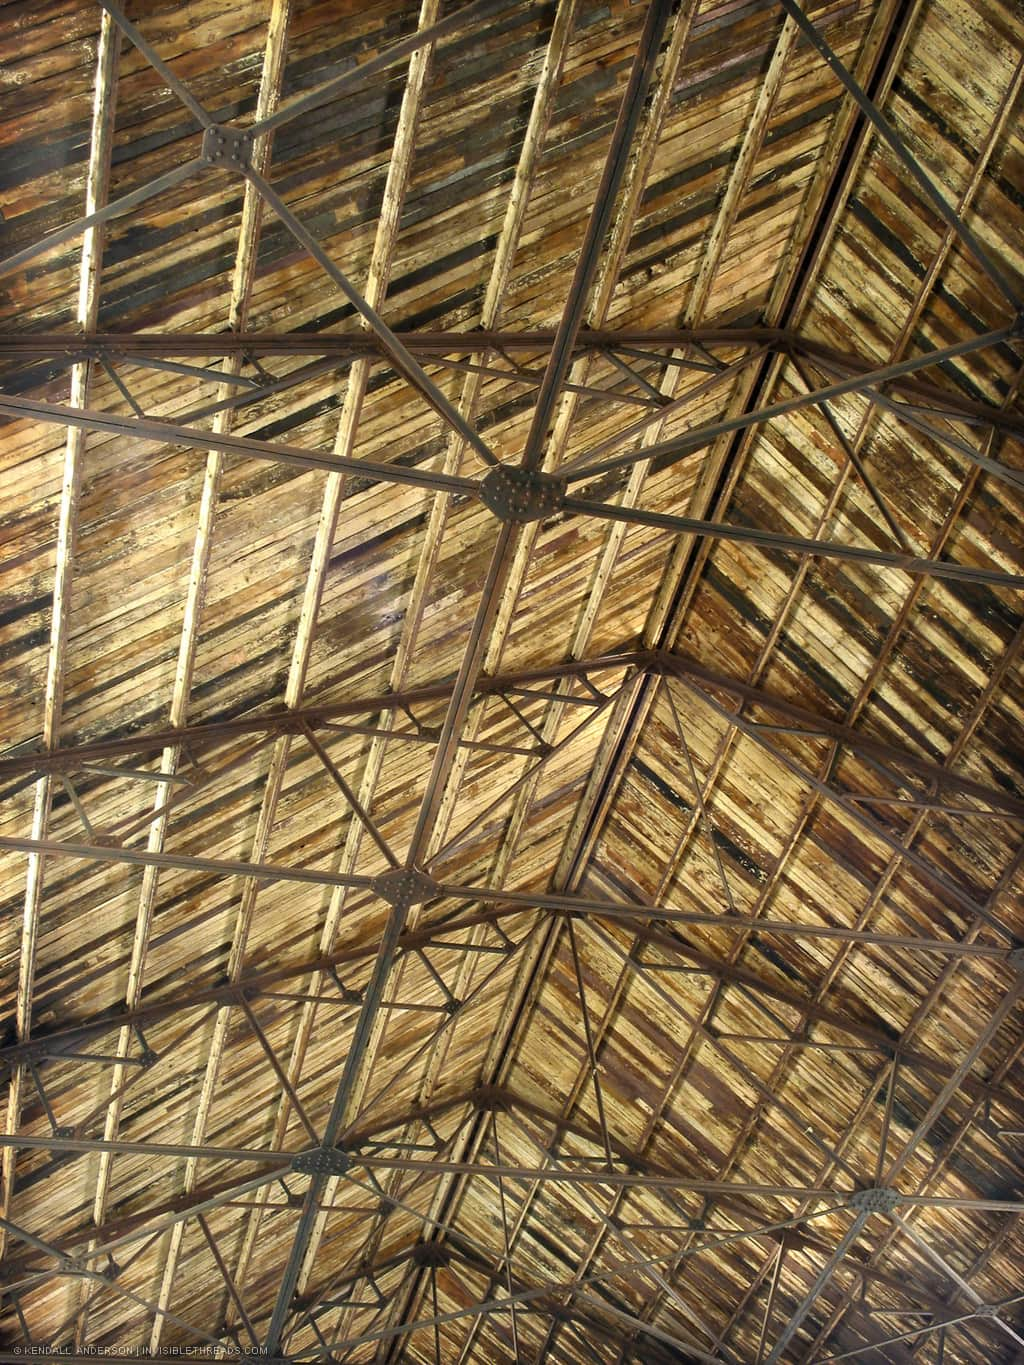 Underside of an industrial warehouse ceiling, with steel trusses supporting a wood slat roof